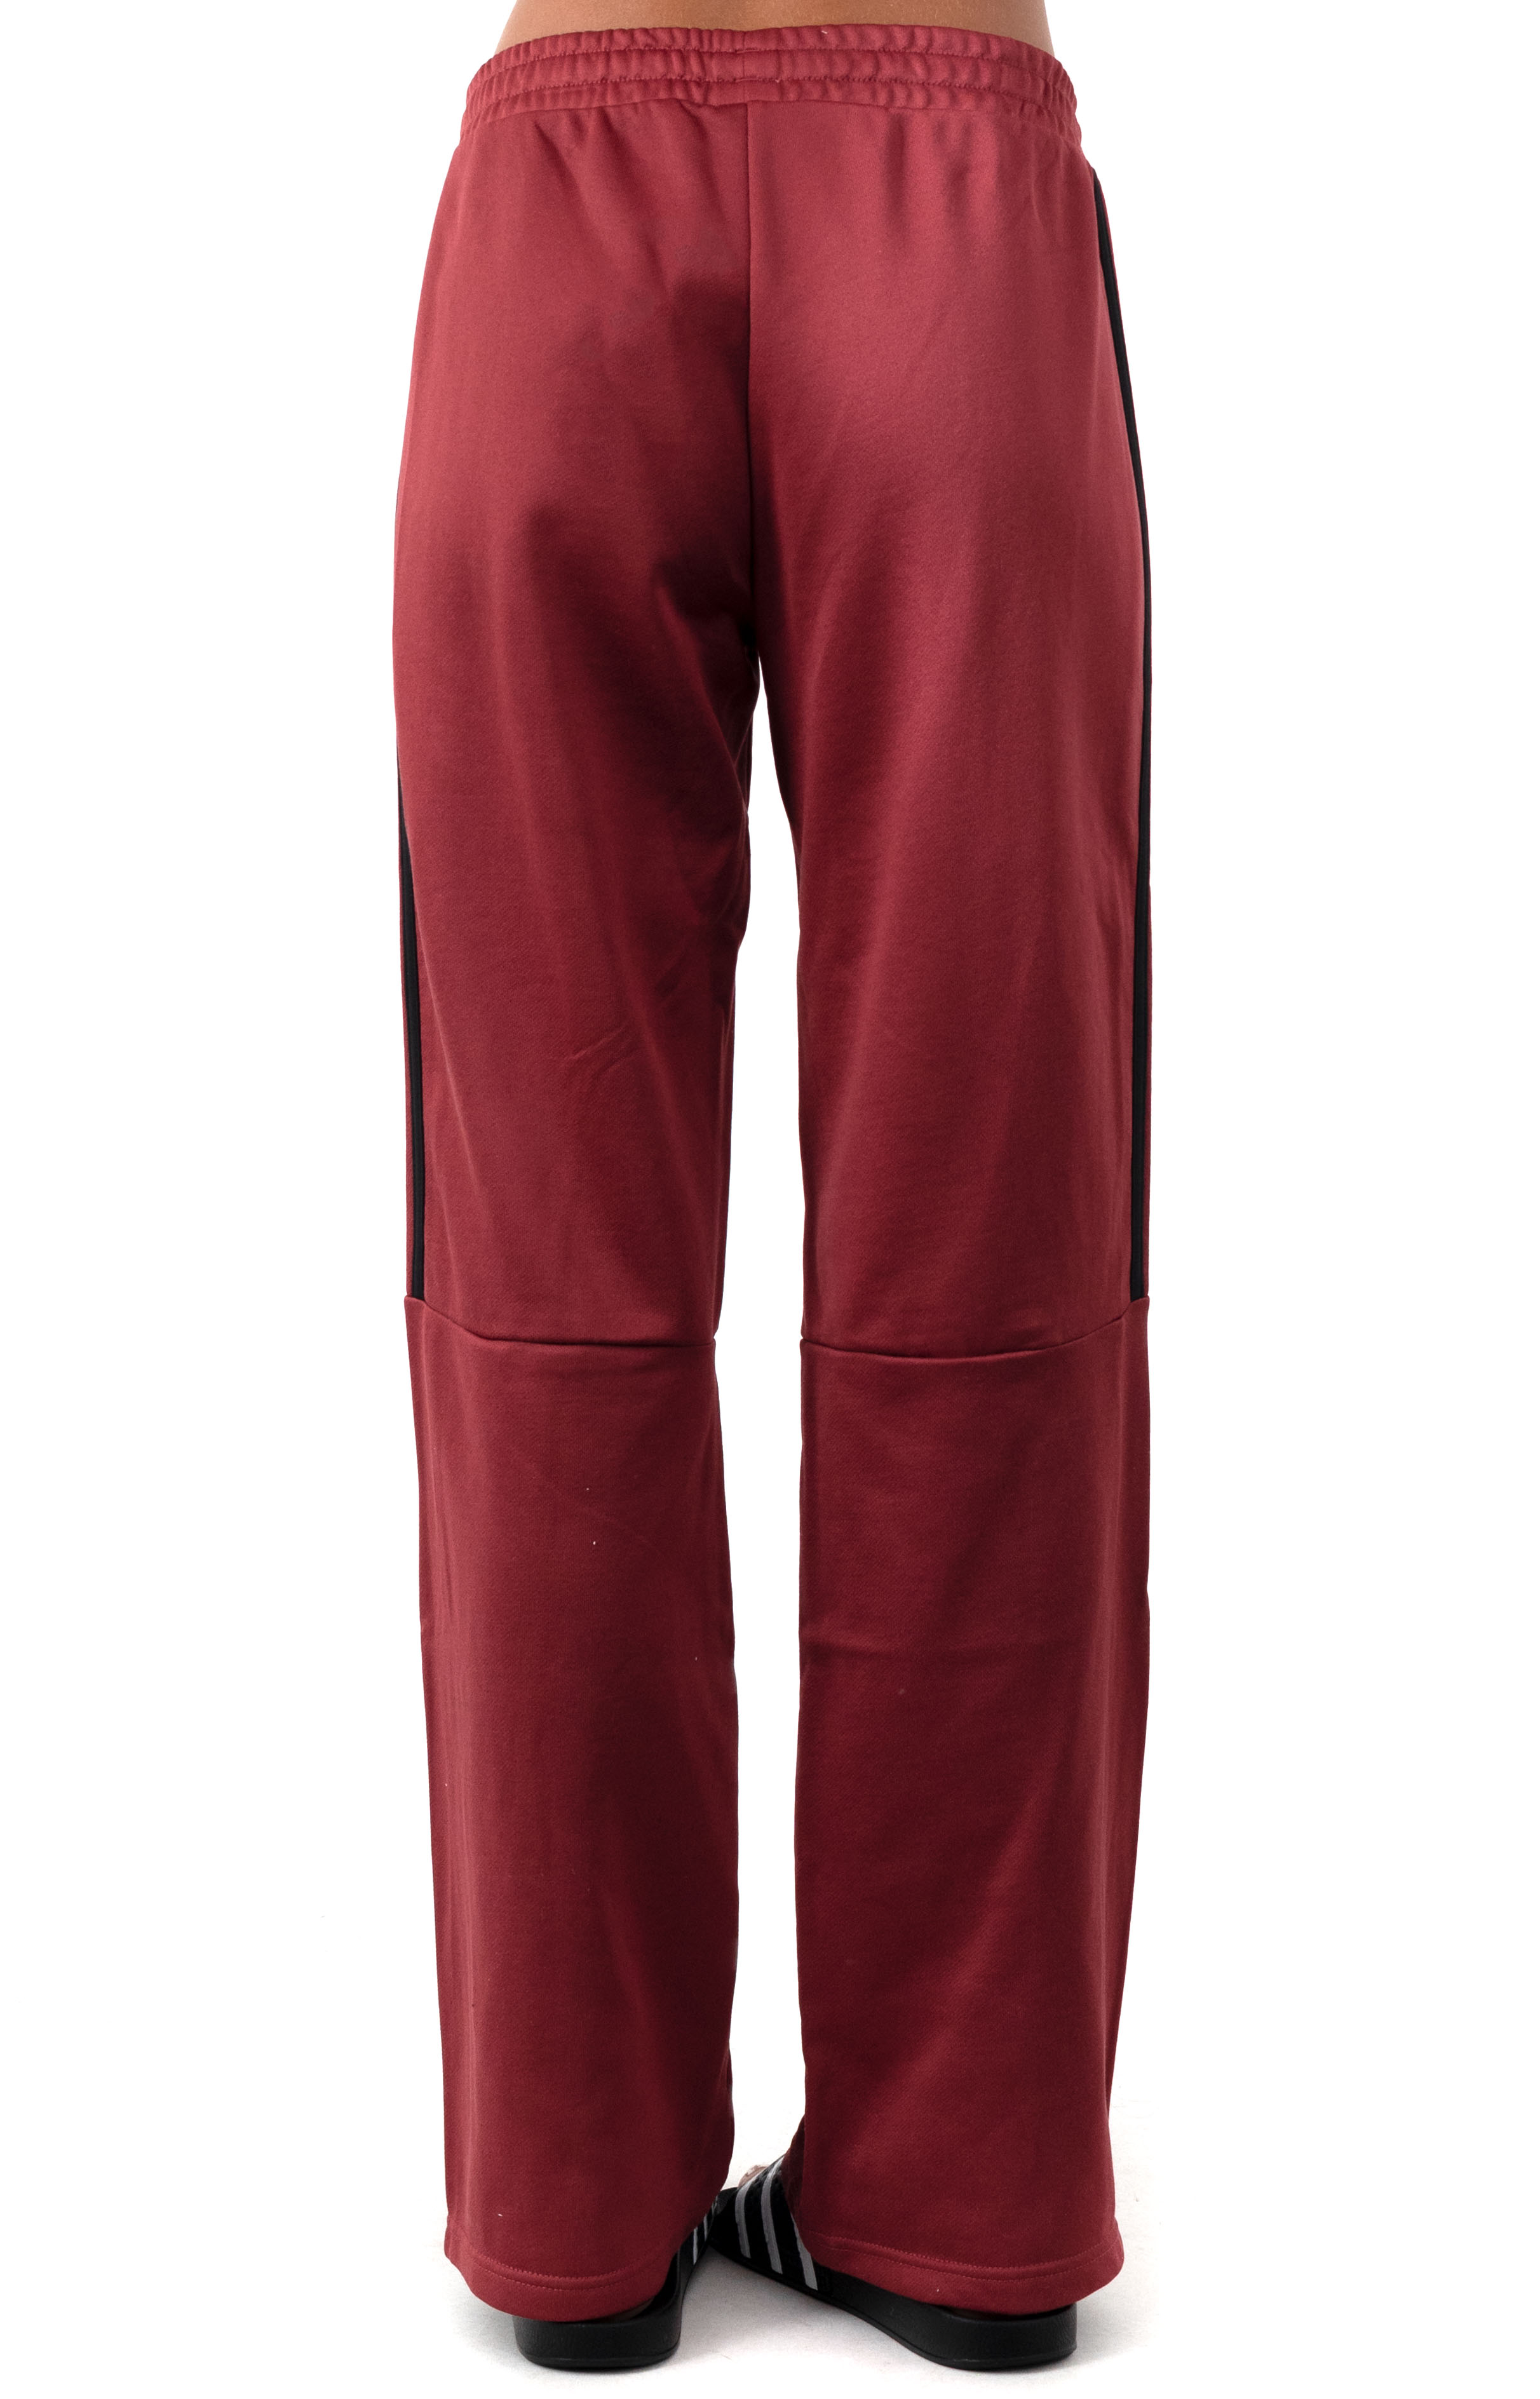 (GD9030) New Authentic Wide Leg Pants - Legacy Red 3